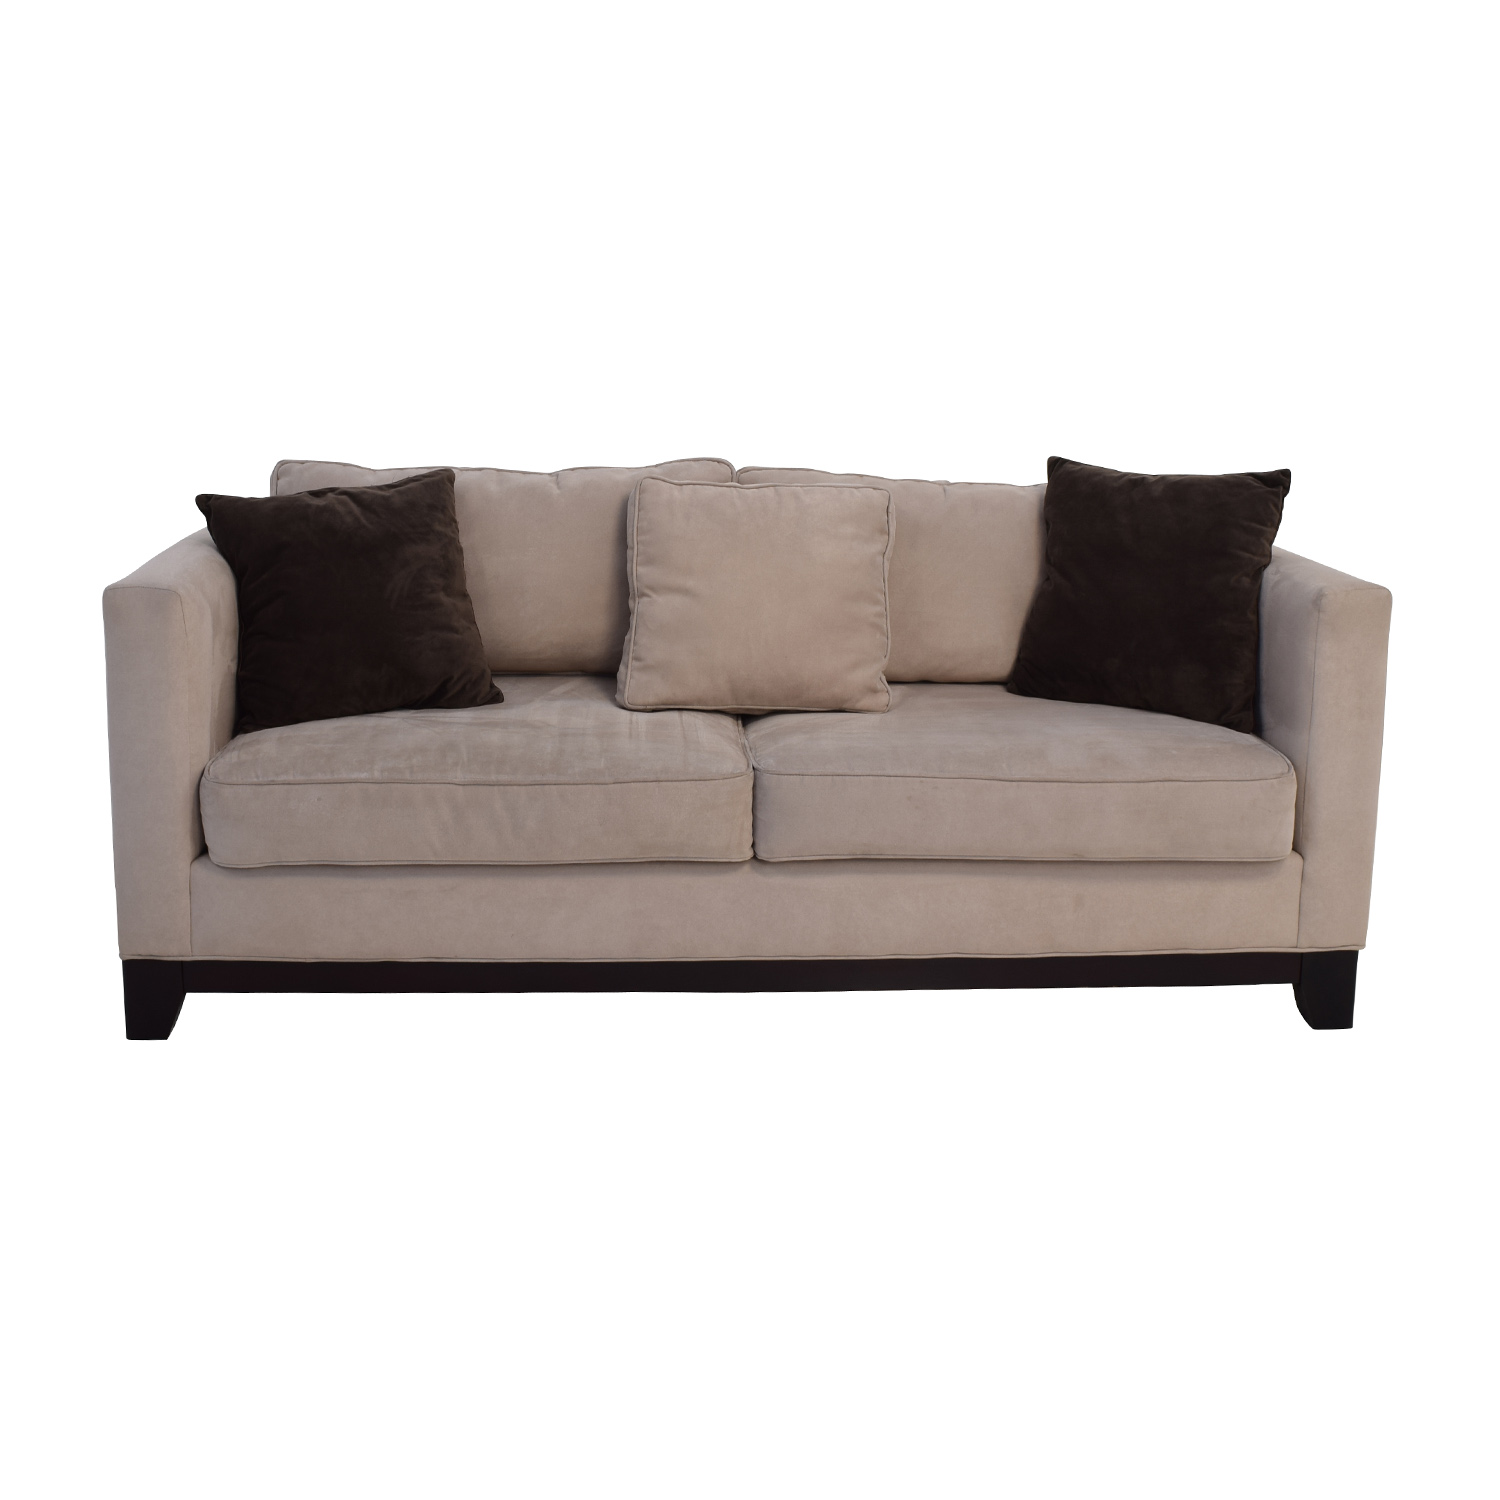 Sofa 60er 60 Off Bauhaus Furniture Bauhaus Beige Microsuede Couch With Toss Pillows Sofas